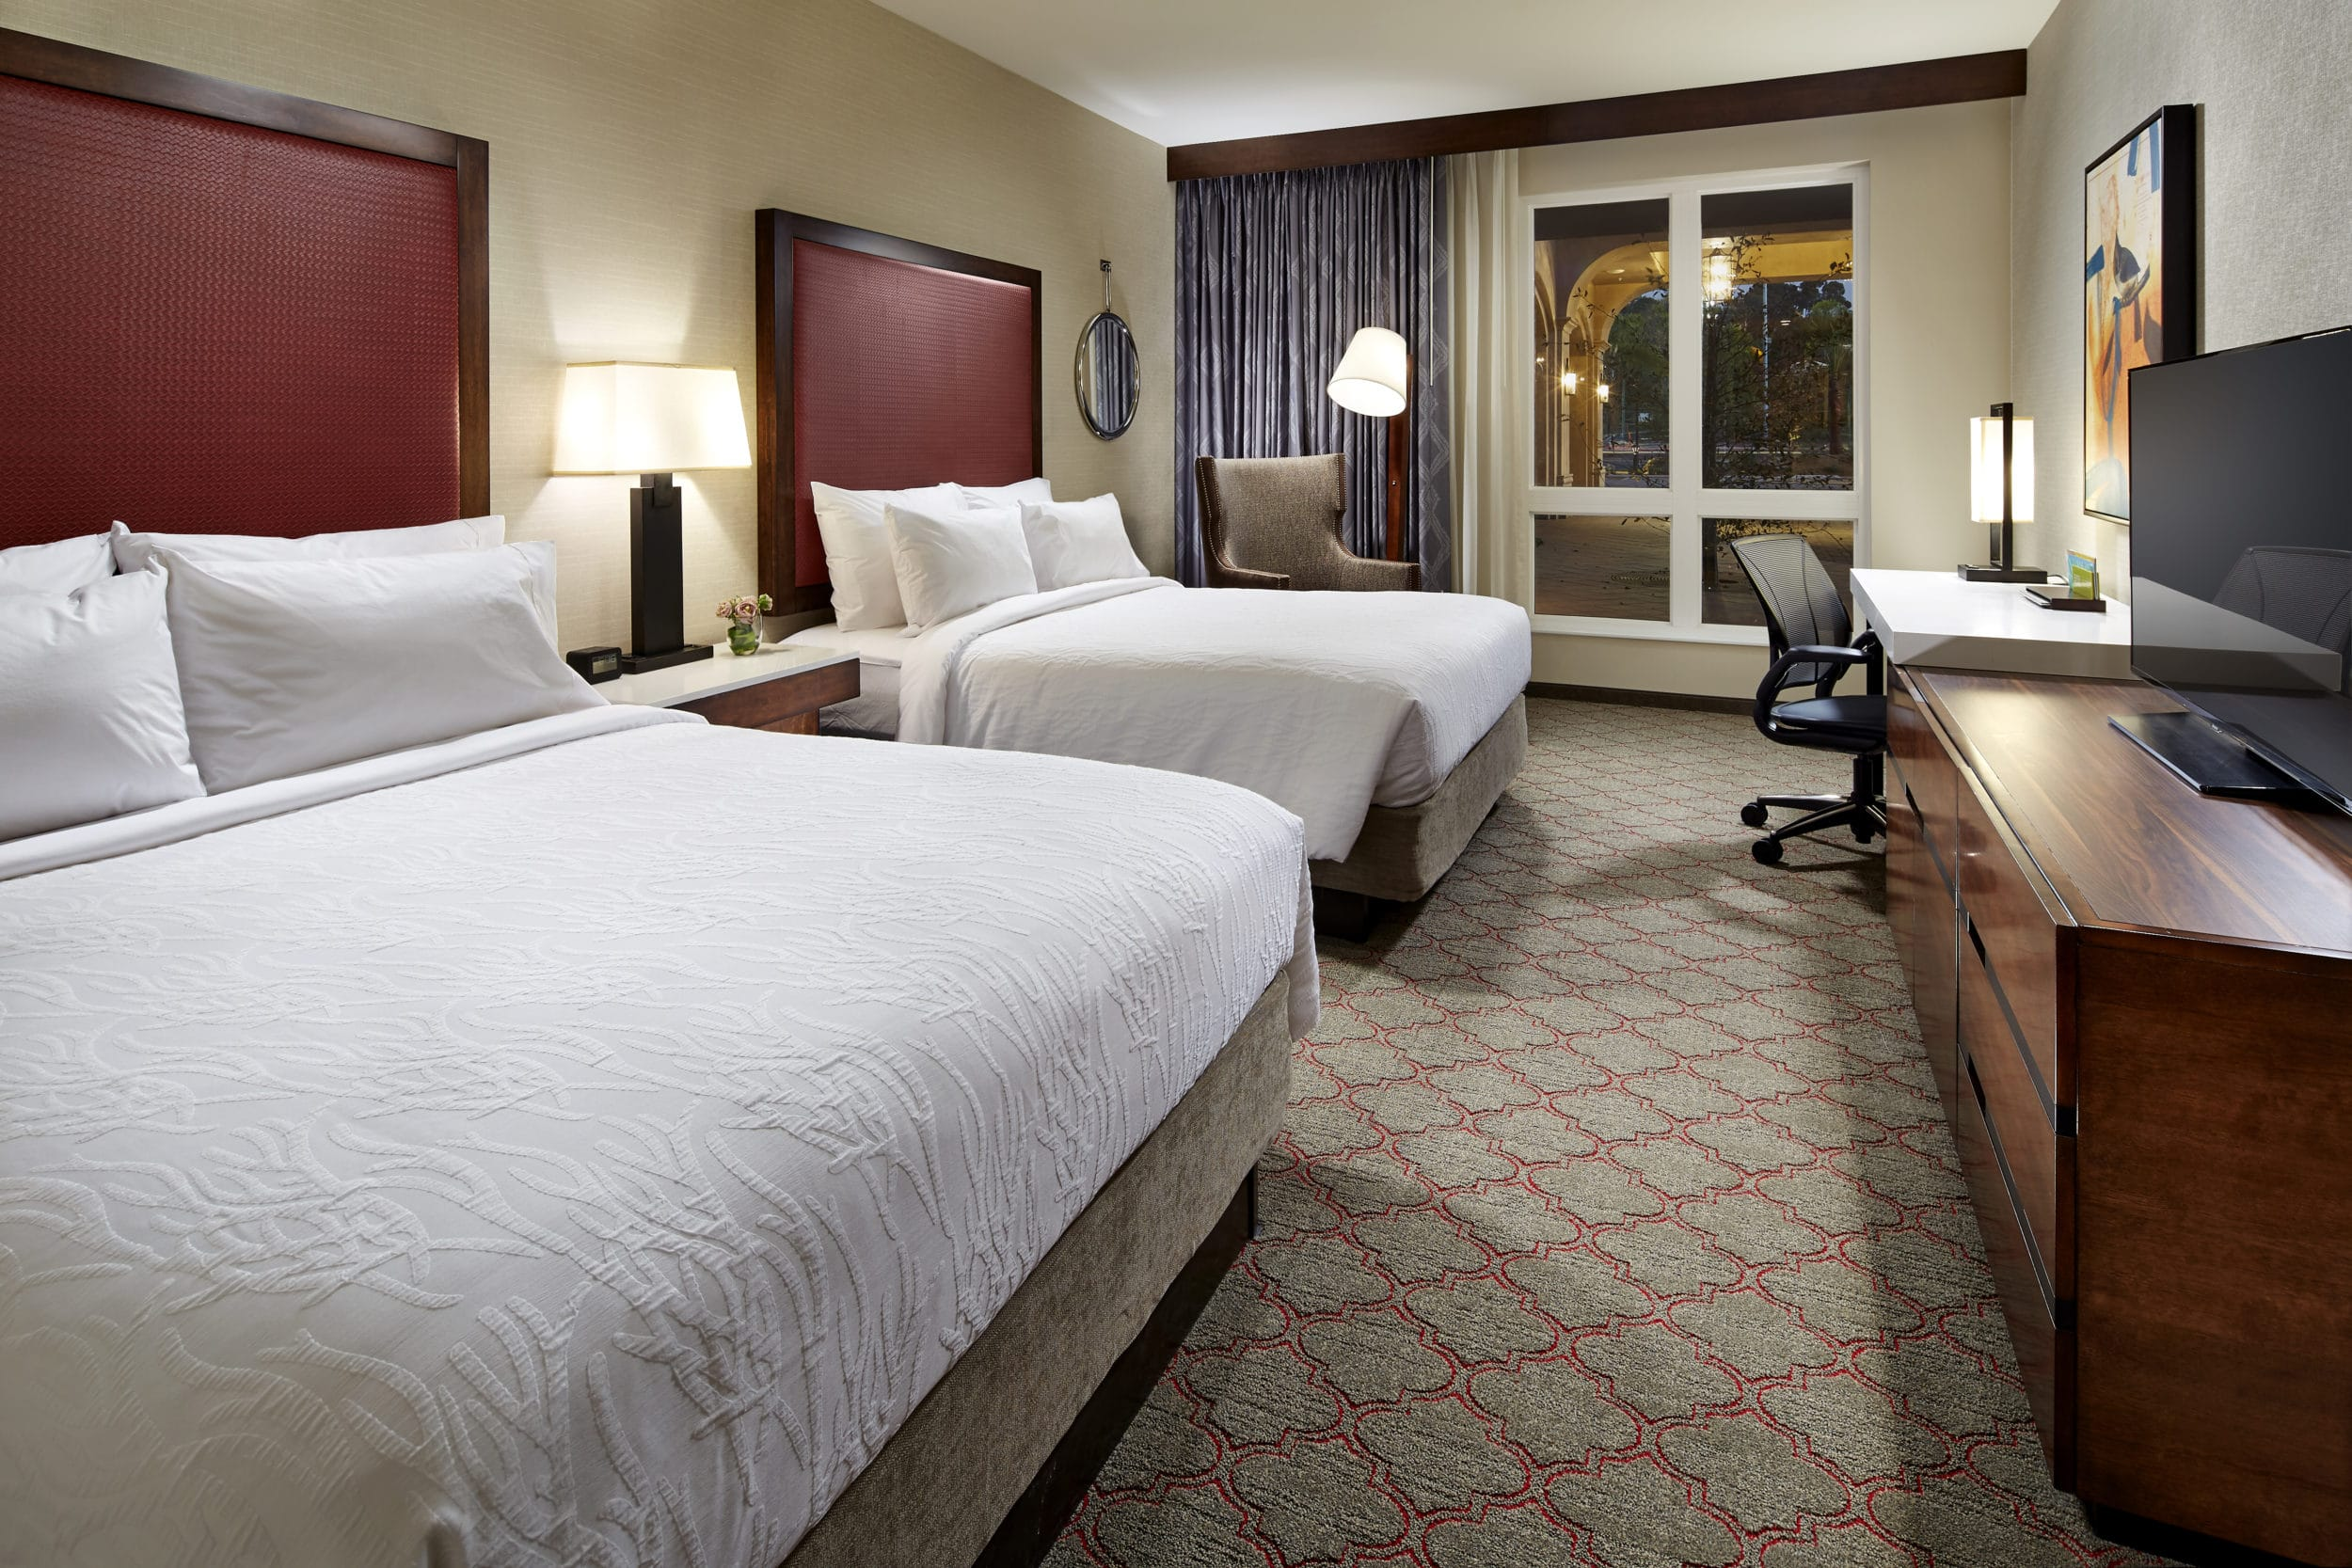 Hilton Garden Inn Old Town/Sea World Area